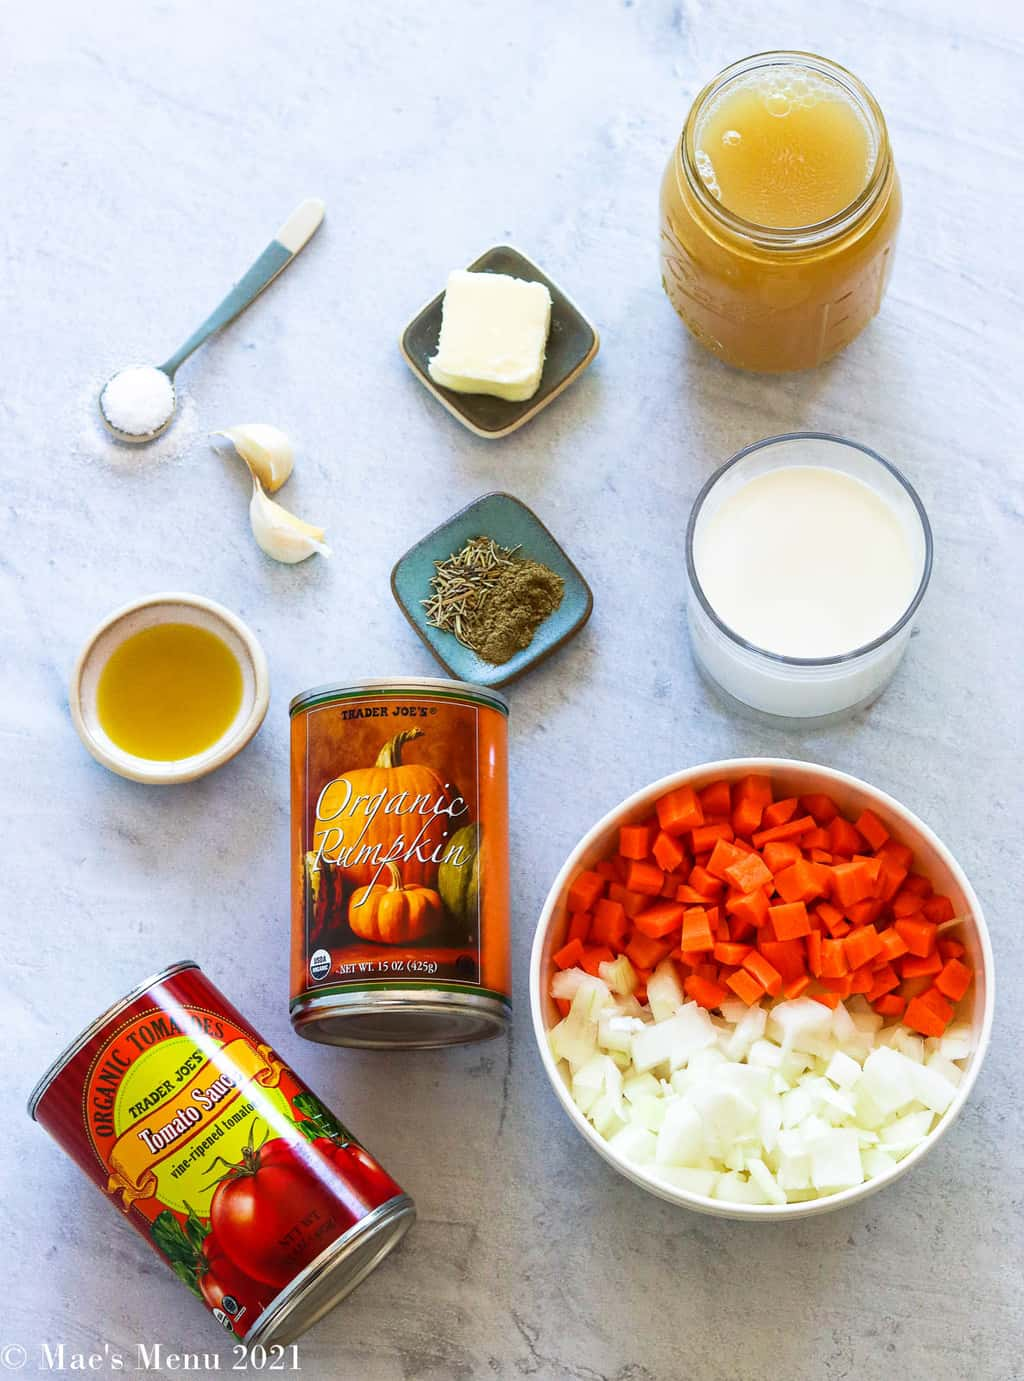 All of the ingredients for pumpkin pasta sauce: chicken broth, butter, seasonings, salt, garlic, half & half, olive oil, pumpkin puree, tomato sauce, carrots, and onions